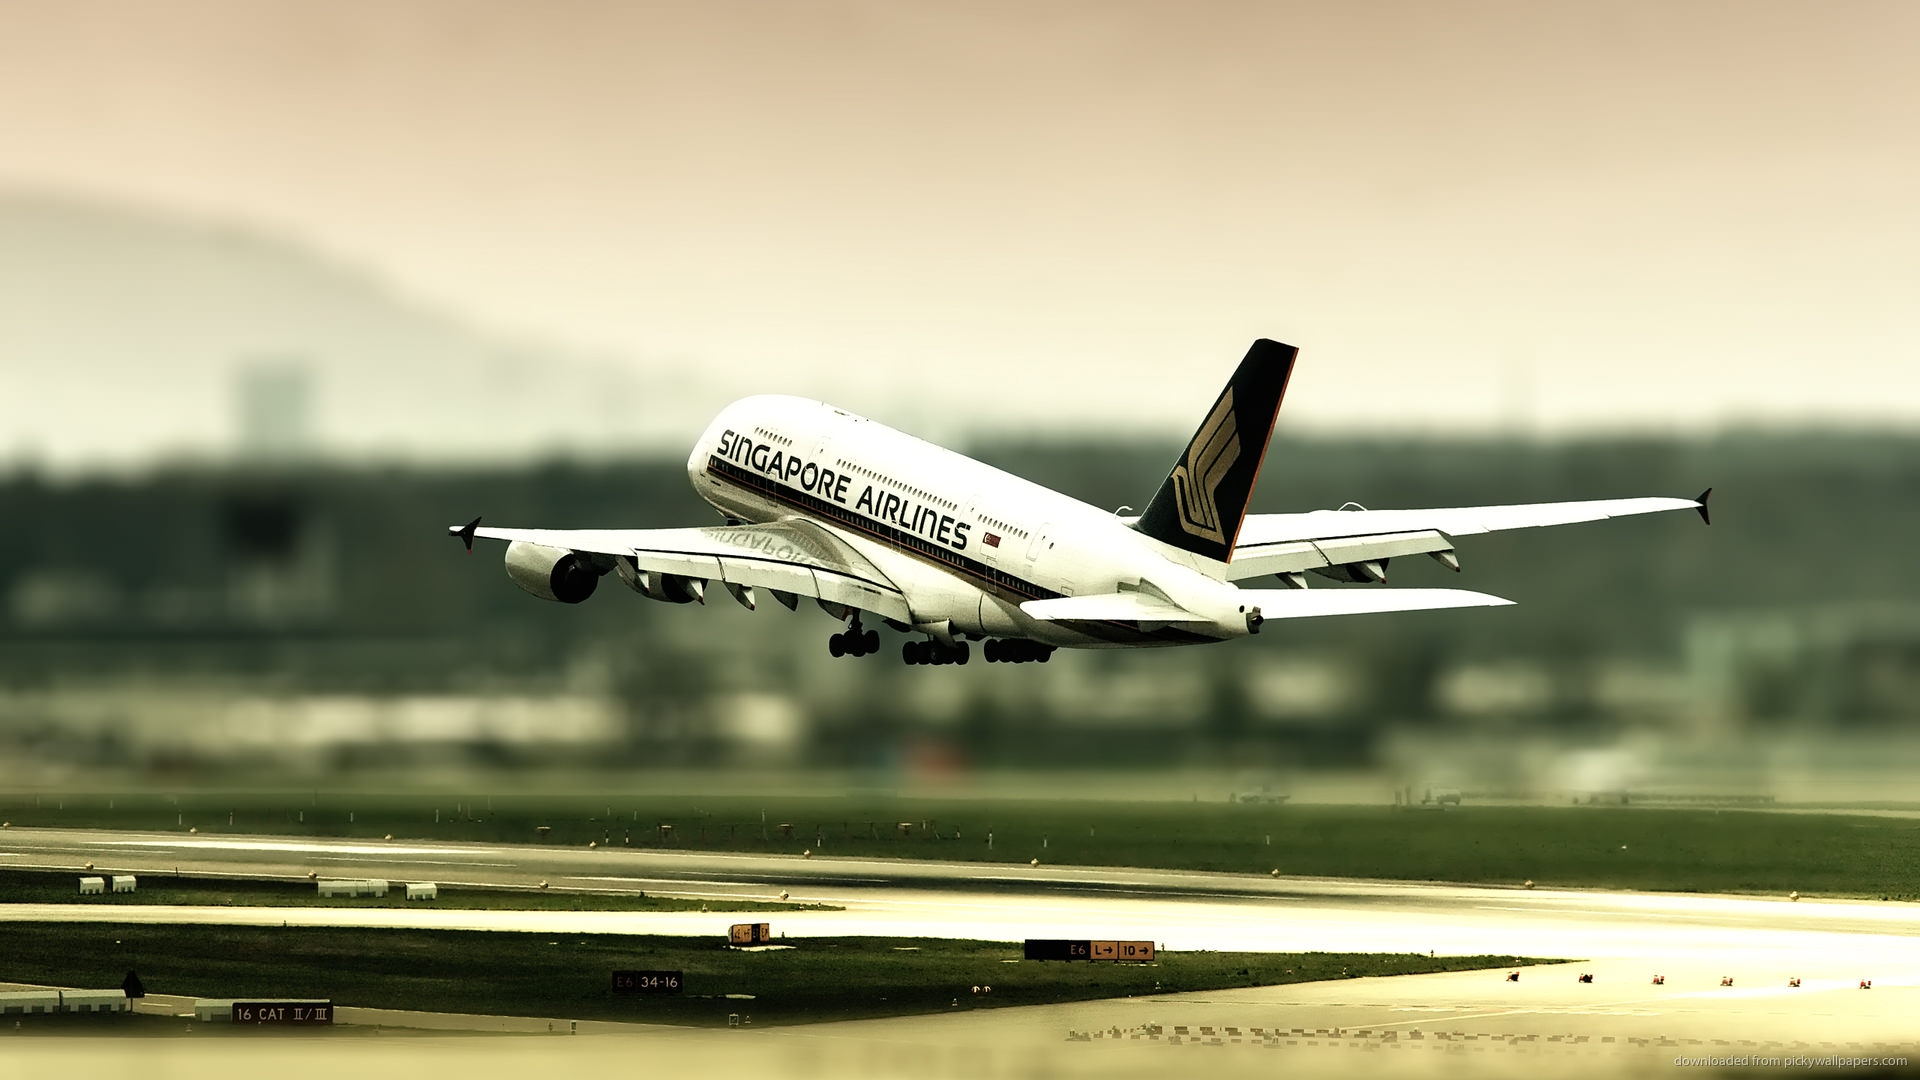 Tilt Shift Singapore Airlines Wallpaper